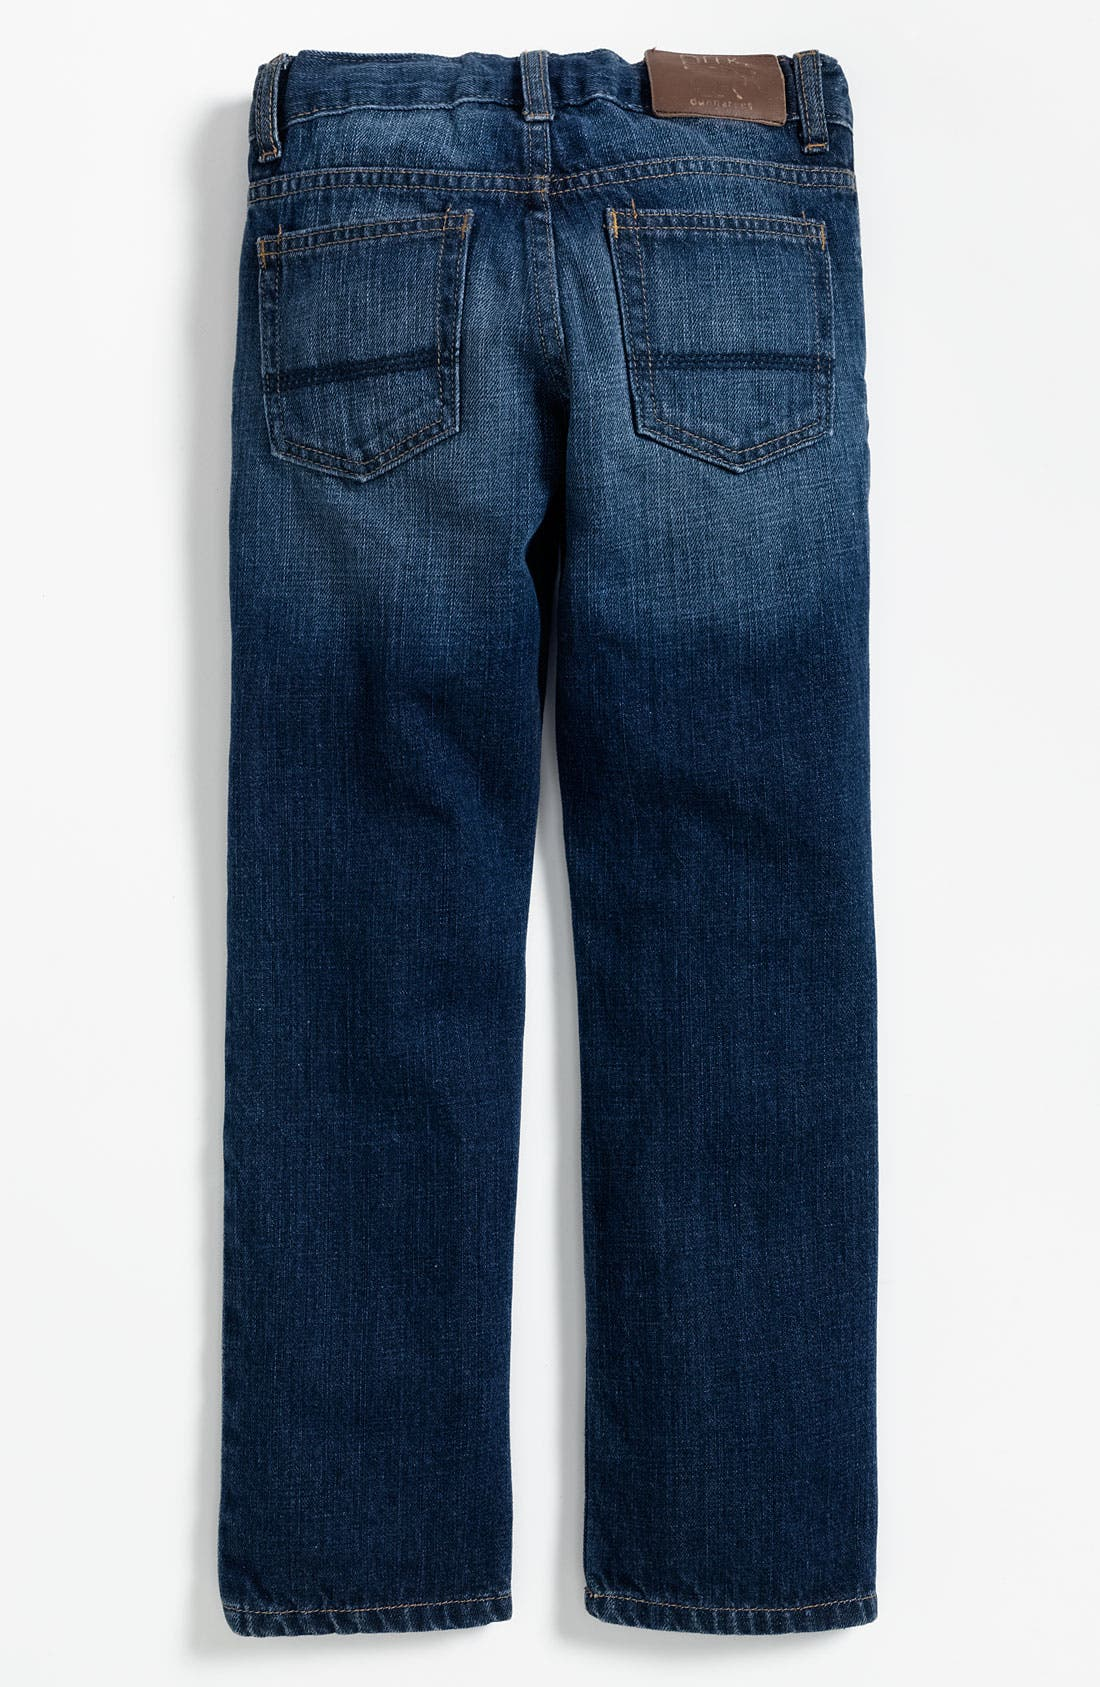 Alternate Image 1 Selected - Peek 'Ellis' Jeans (Toddler, Little Boys & Big Boys)